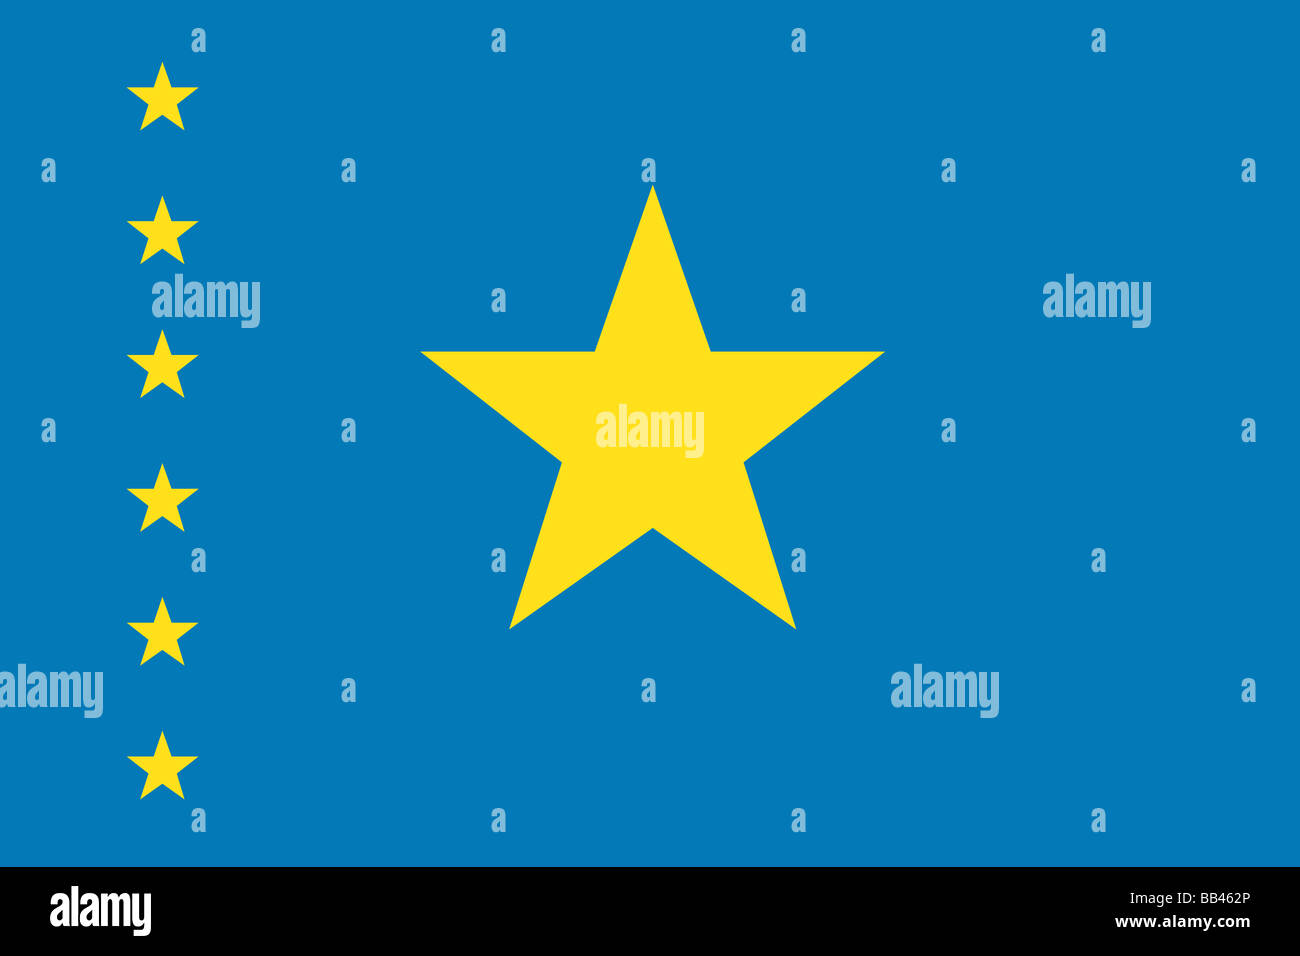 Historical flag of the Democratic Republic of the Congo, a country in Africa, from 1997 to 2006. - Stock Image